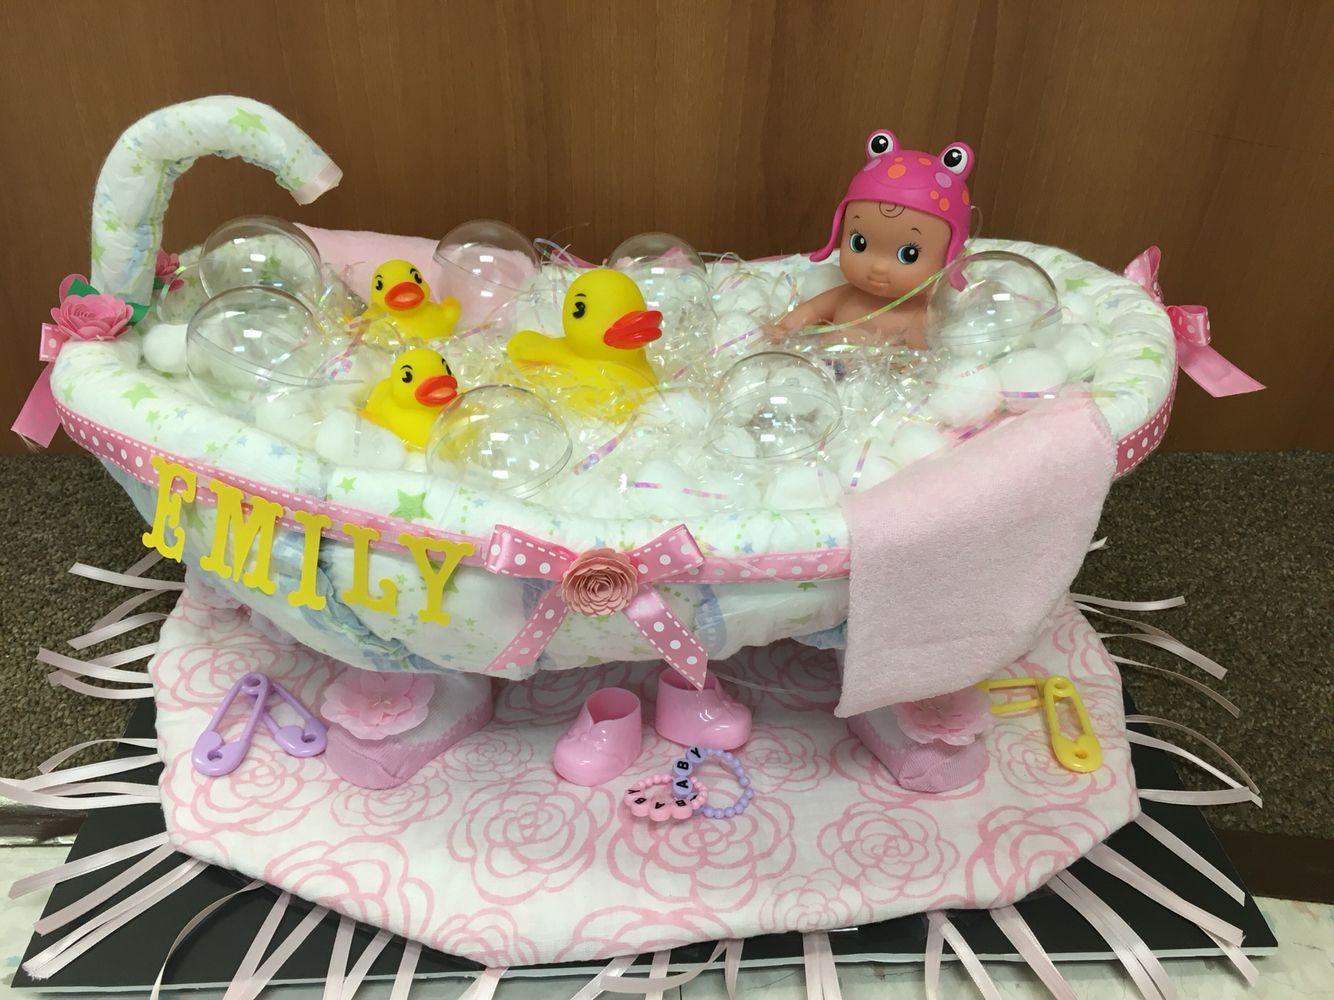 Made A Diaper Bathtub Out Of Diapers For A Co Worker